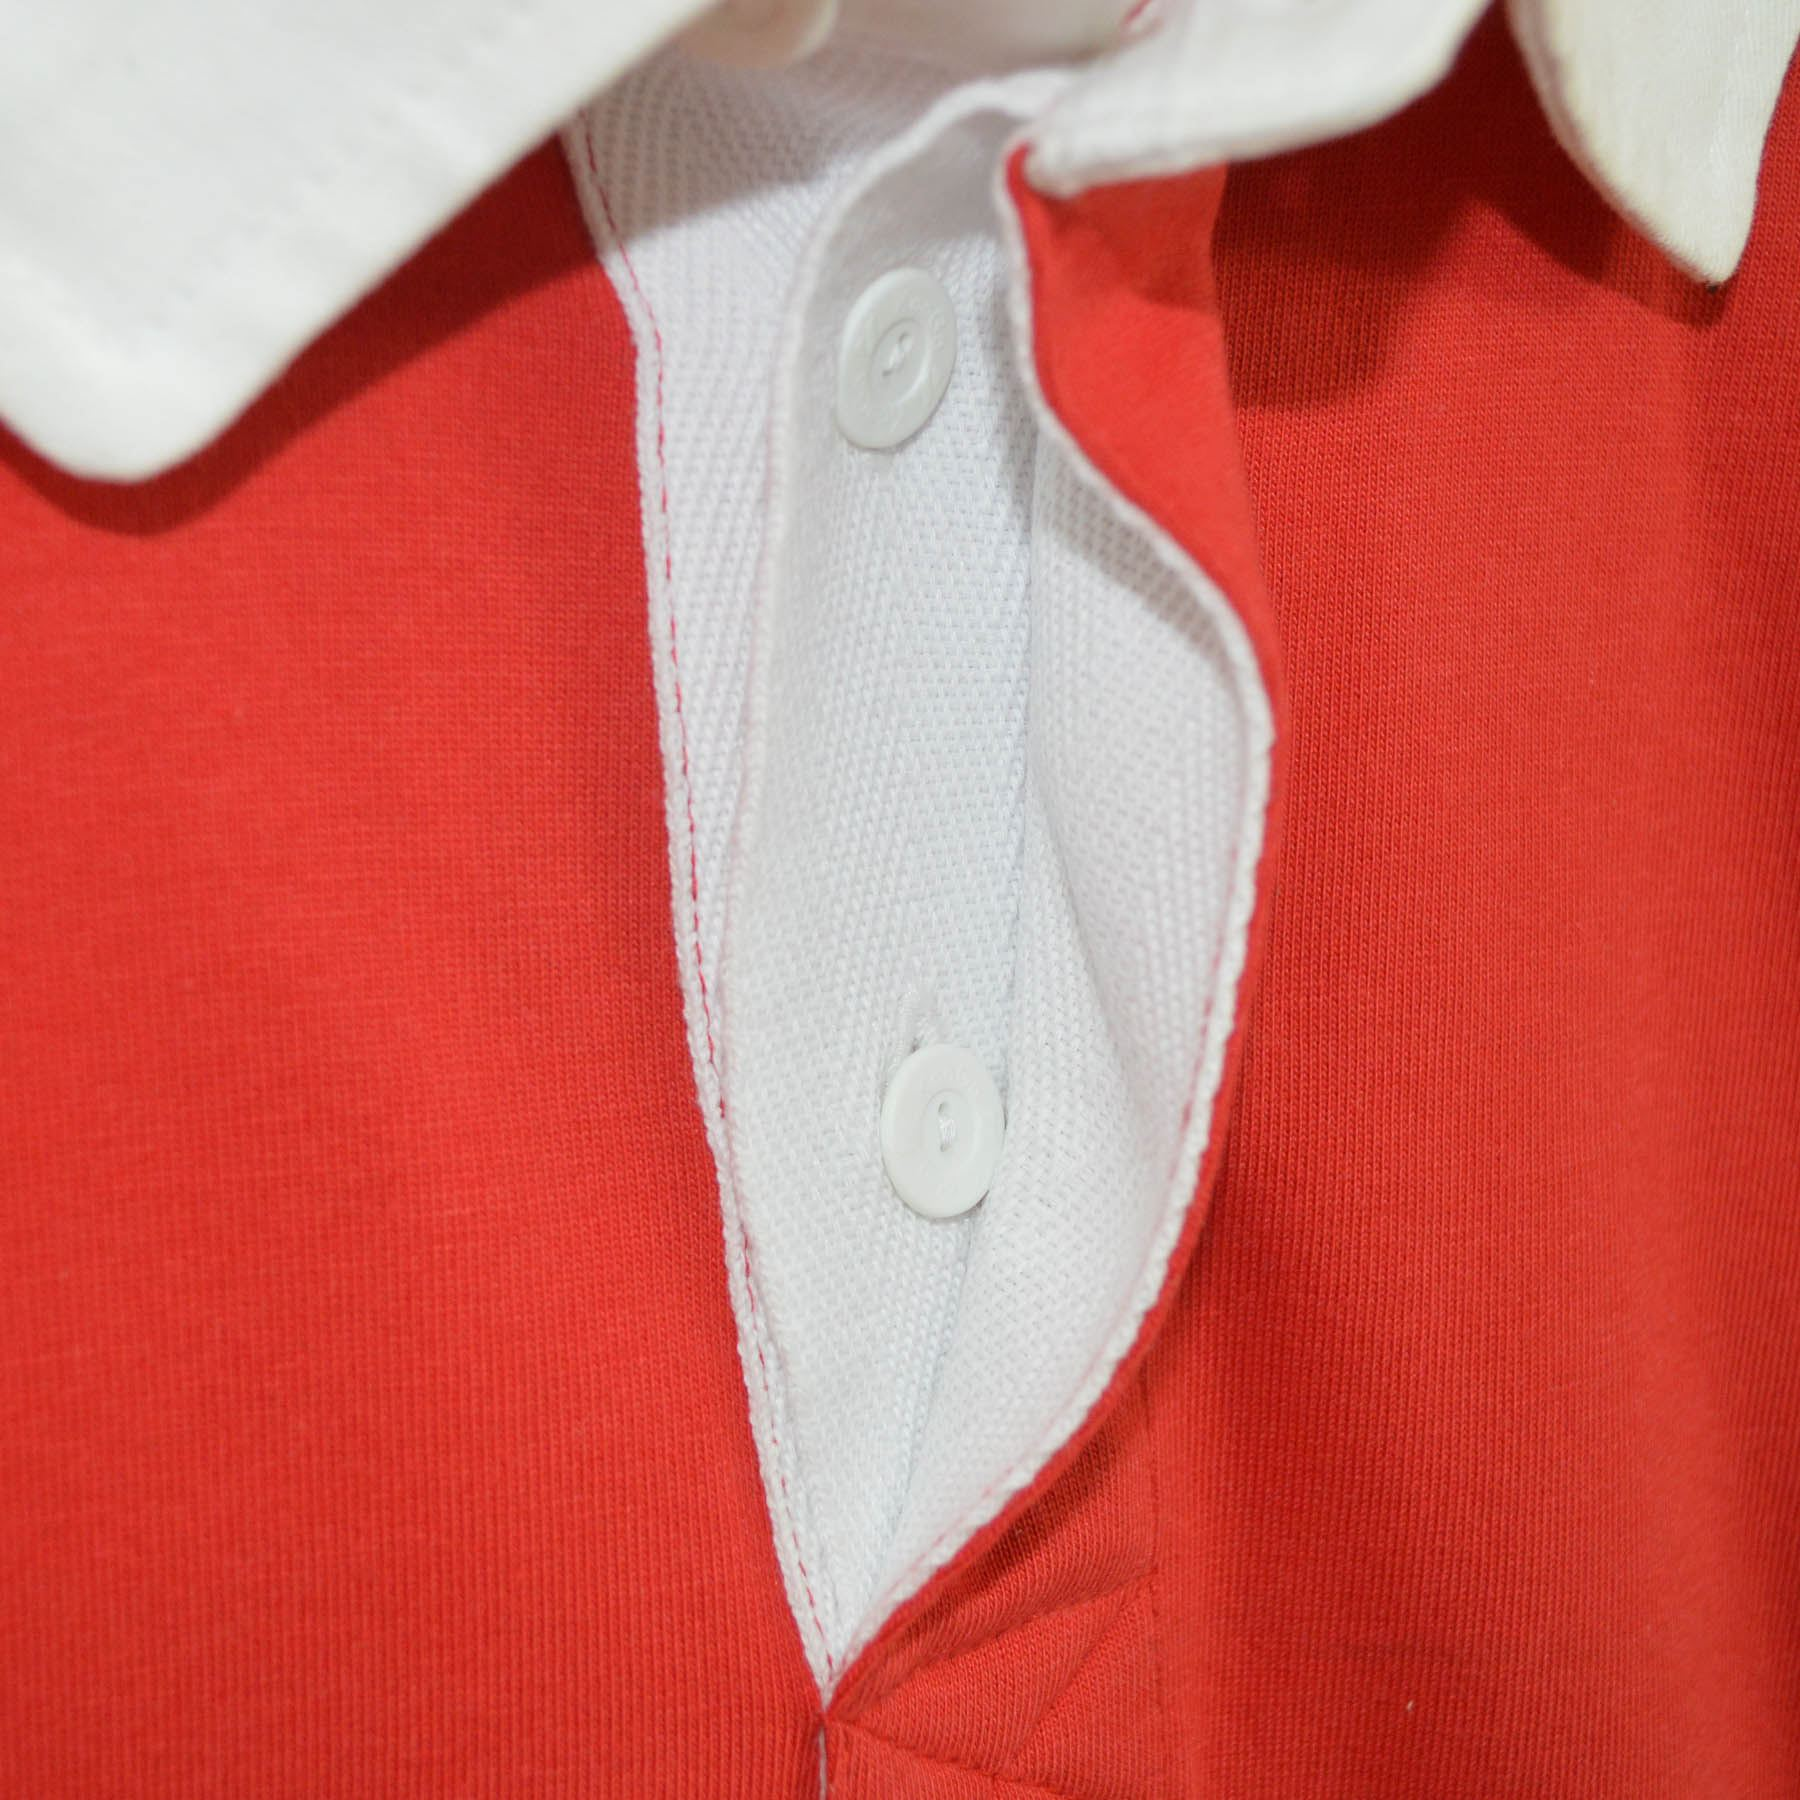 NEW-Kooga-Mens-Polo-Rugby-Shirt-Top-in-Red-or-Green-Size-S-amp-XL thumbnail 8